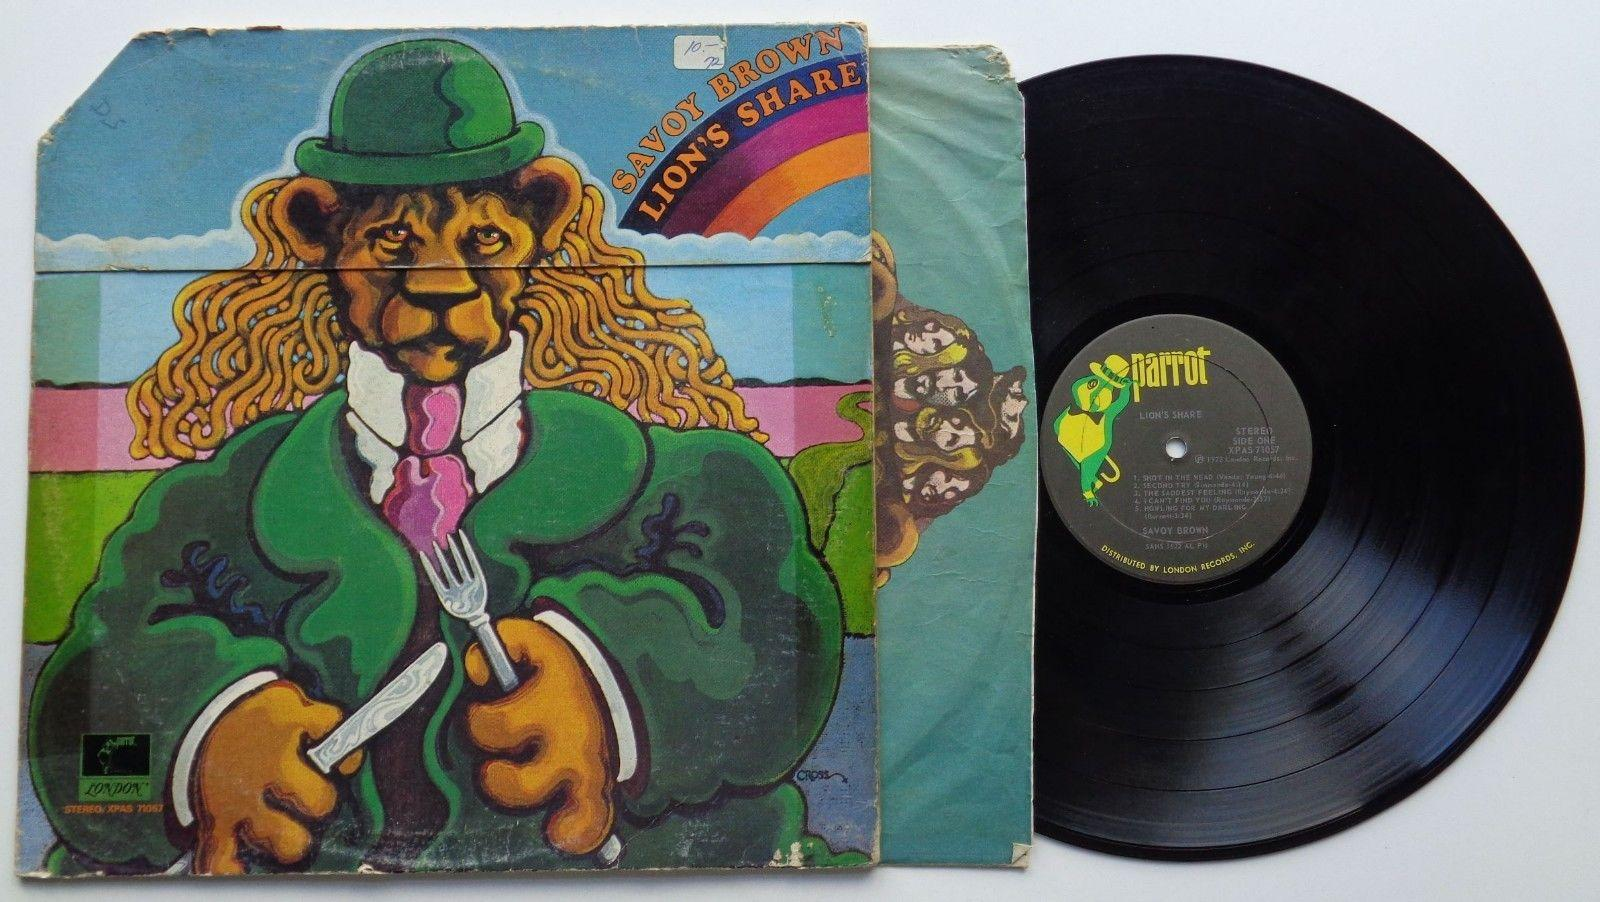 235	Savoy Brown	Lion's Share	(XPAS 71057)	US LP in Gimmick-Sleeve + OIS, parrot